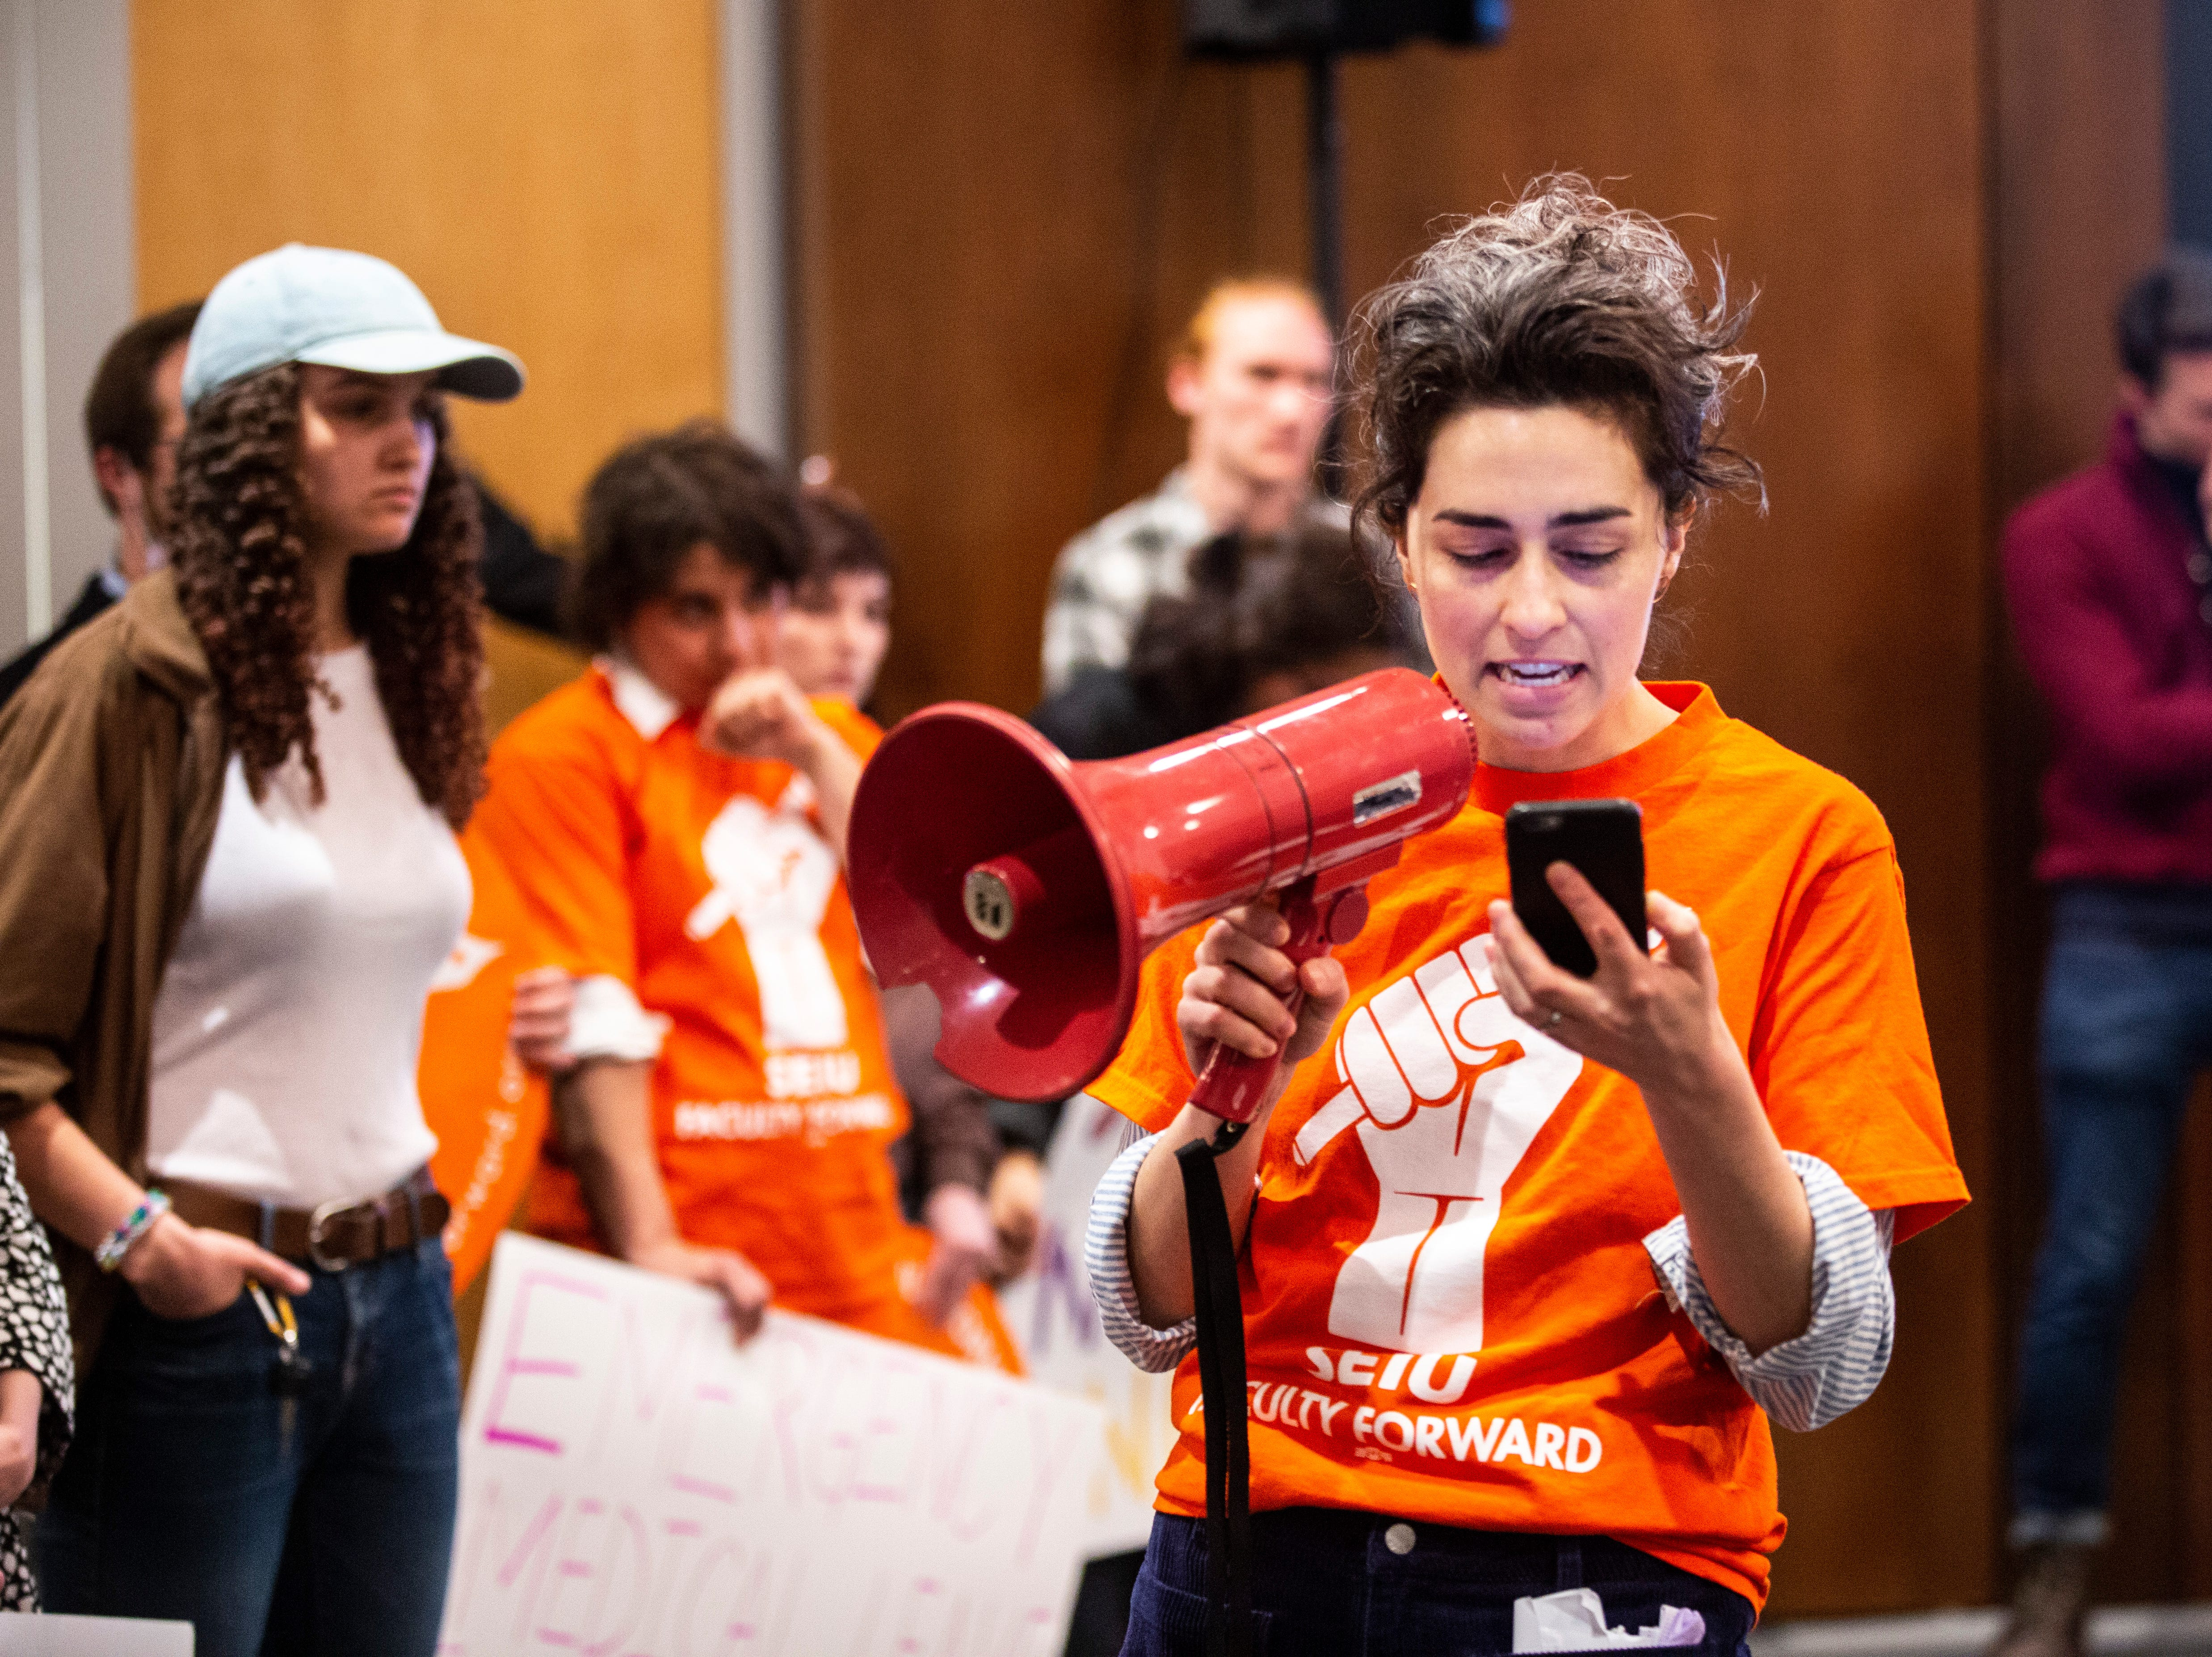 Elizabeth Weiss, a University of Iowa lecturer, reads a statement from the University of Iowa after participating in a protest with members of the Faculty Forward and Service Employees International Union during an Iowa Board of Regents meeting, Thursday, April 18, 2019, in the Levitt Center on the University of Iowa campus in Iowa City, Iowa.